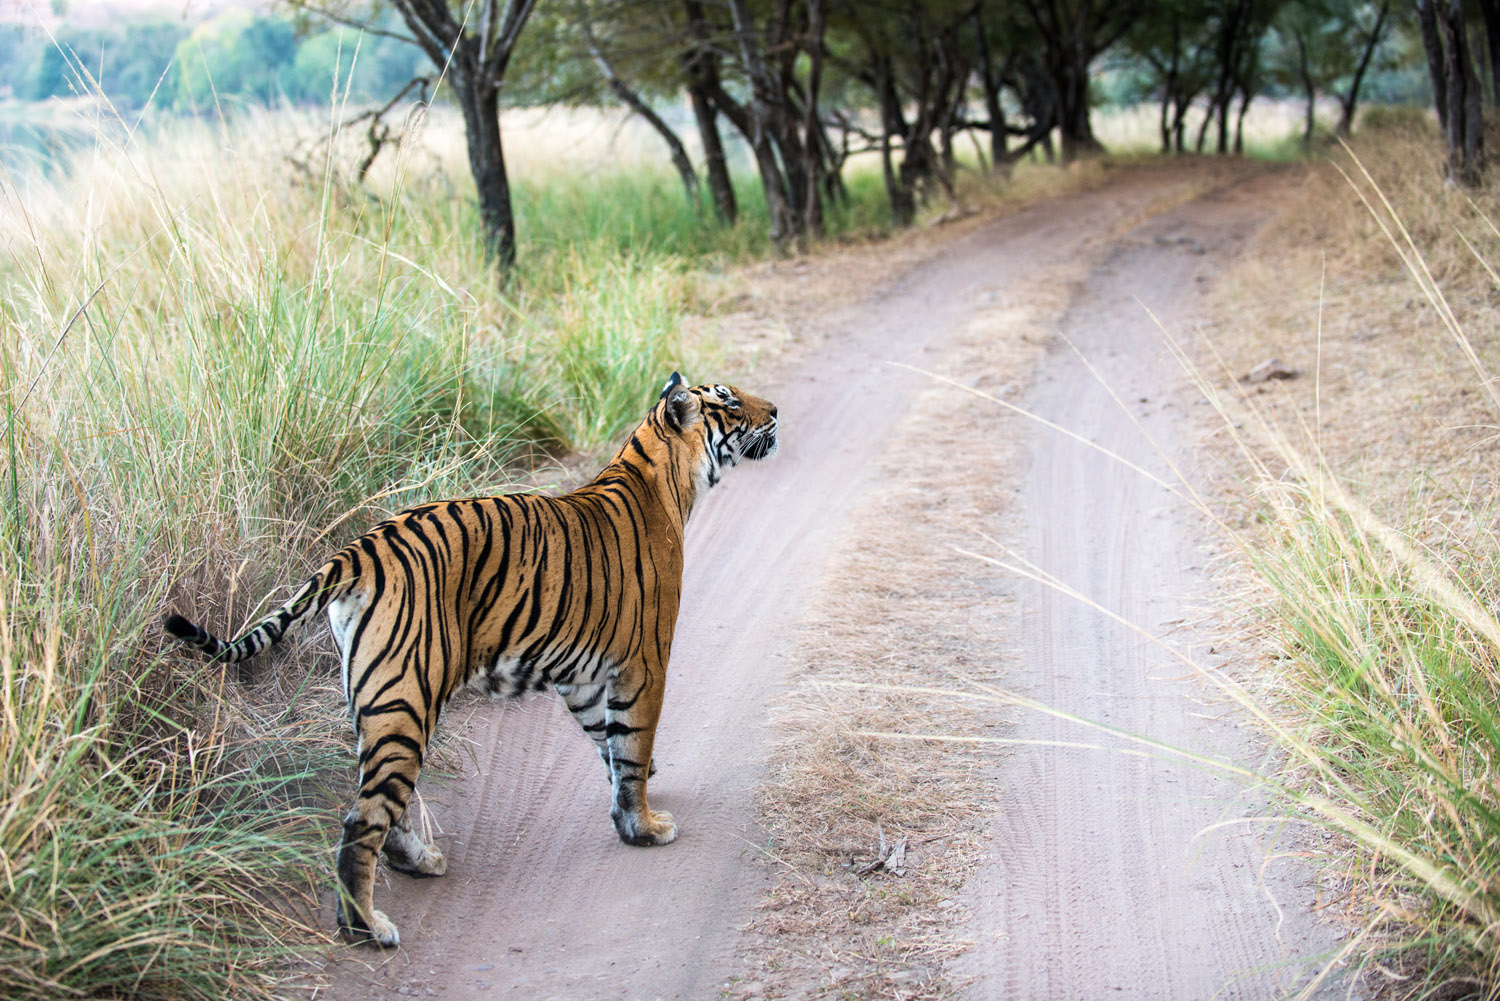 Bengal tigress on track, Ranthambhore National Park, Rajasthan, India